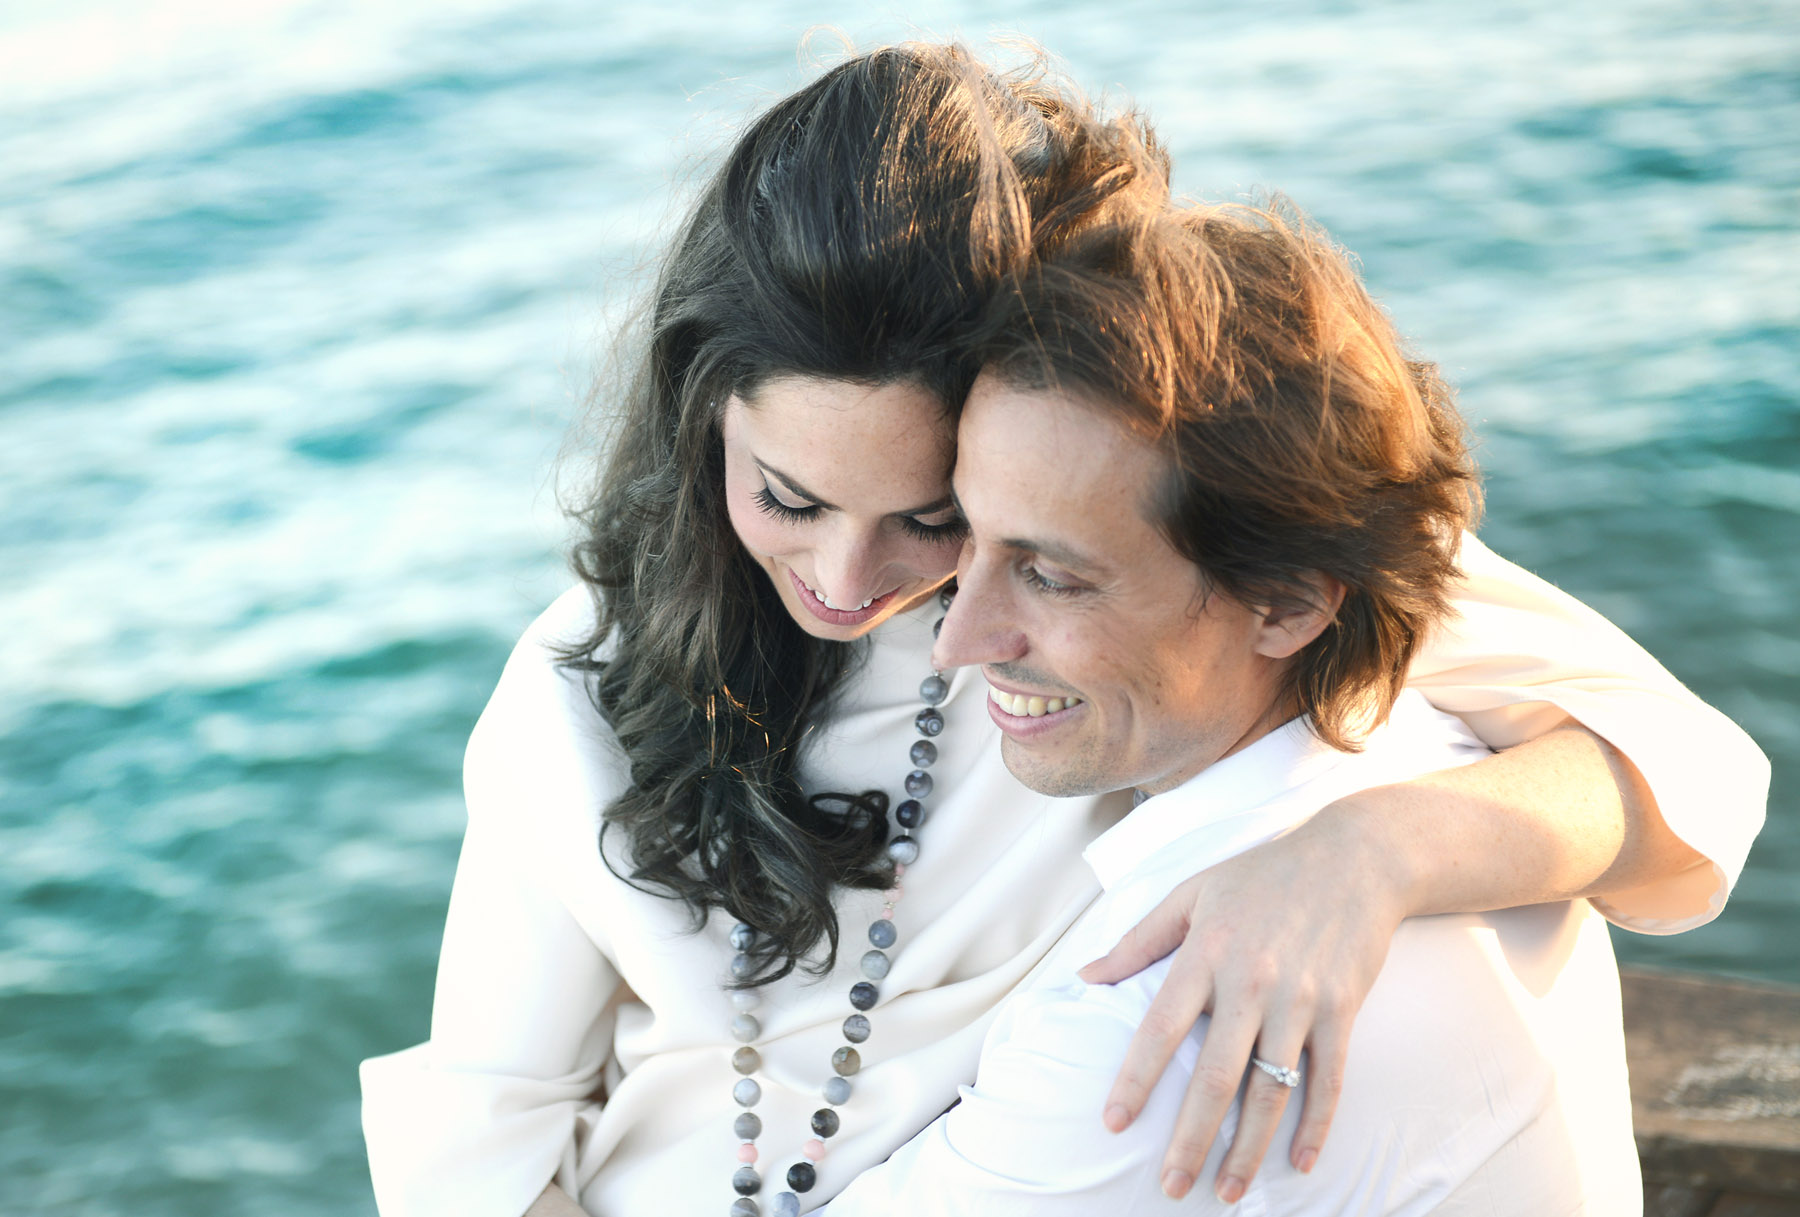 Marbella Pre Wedding photos